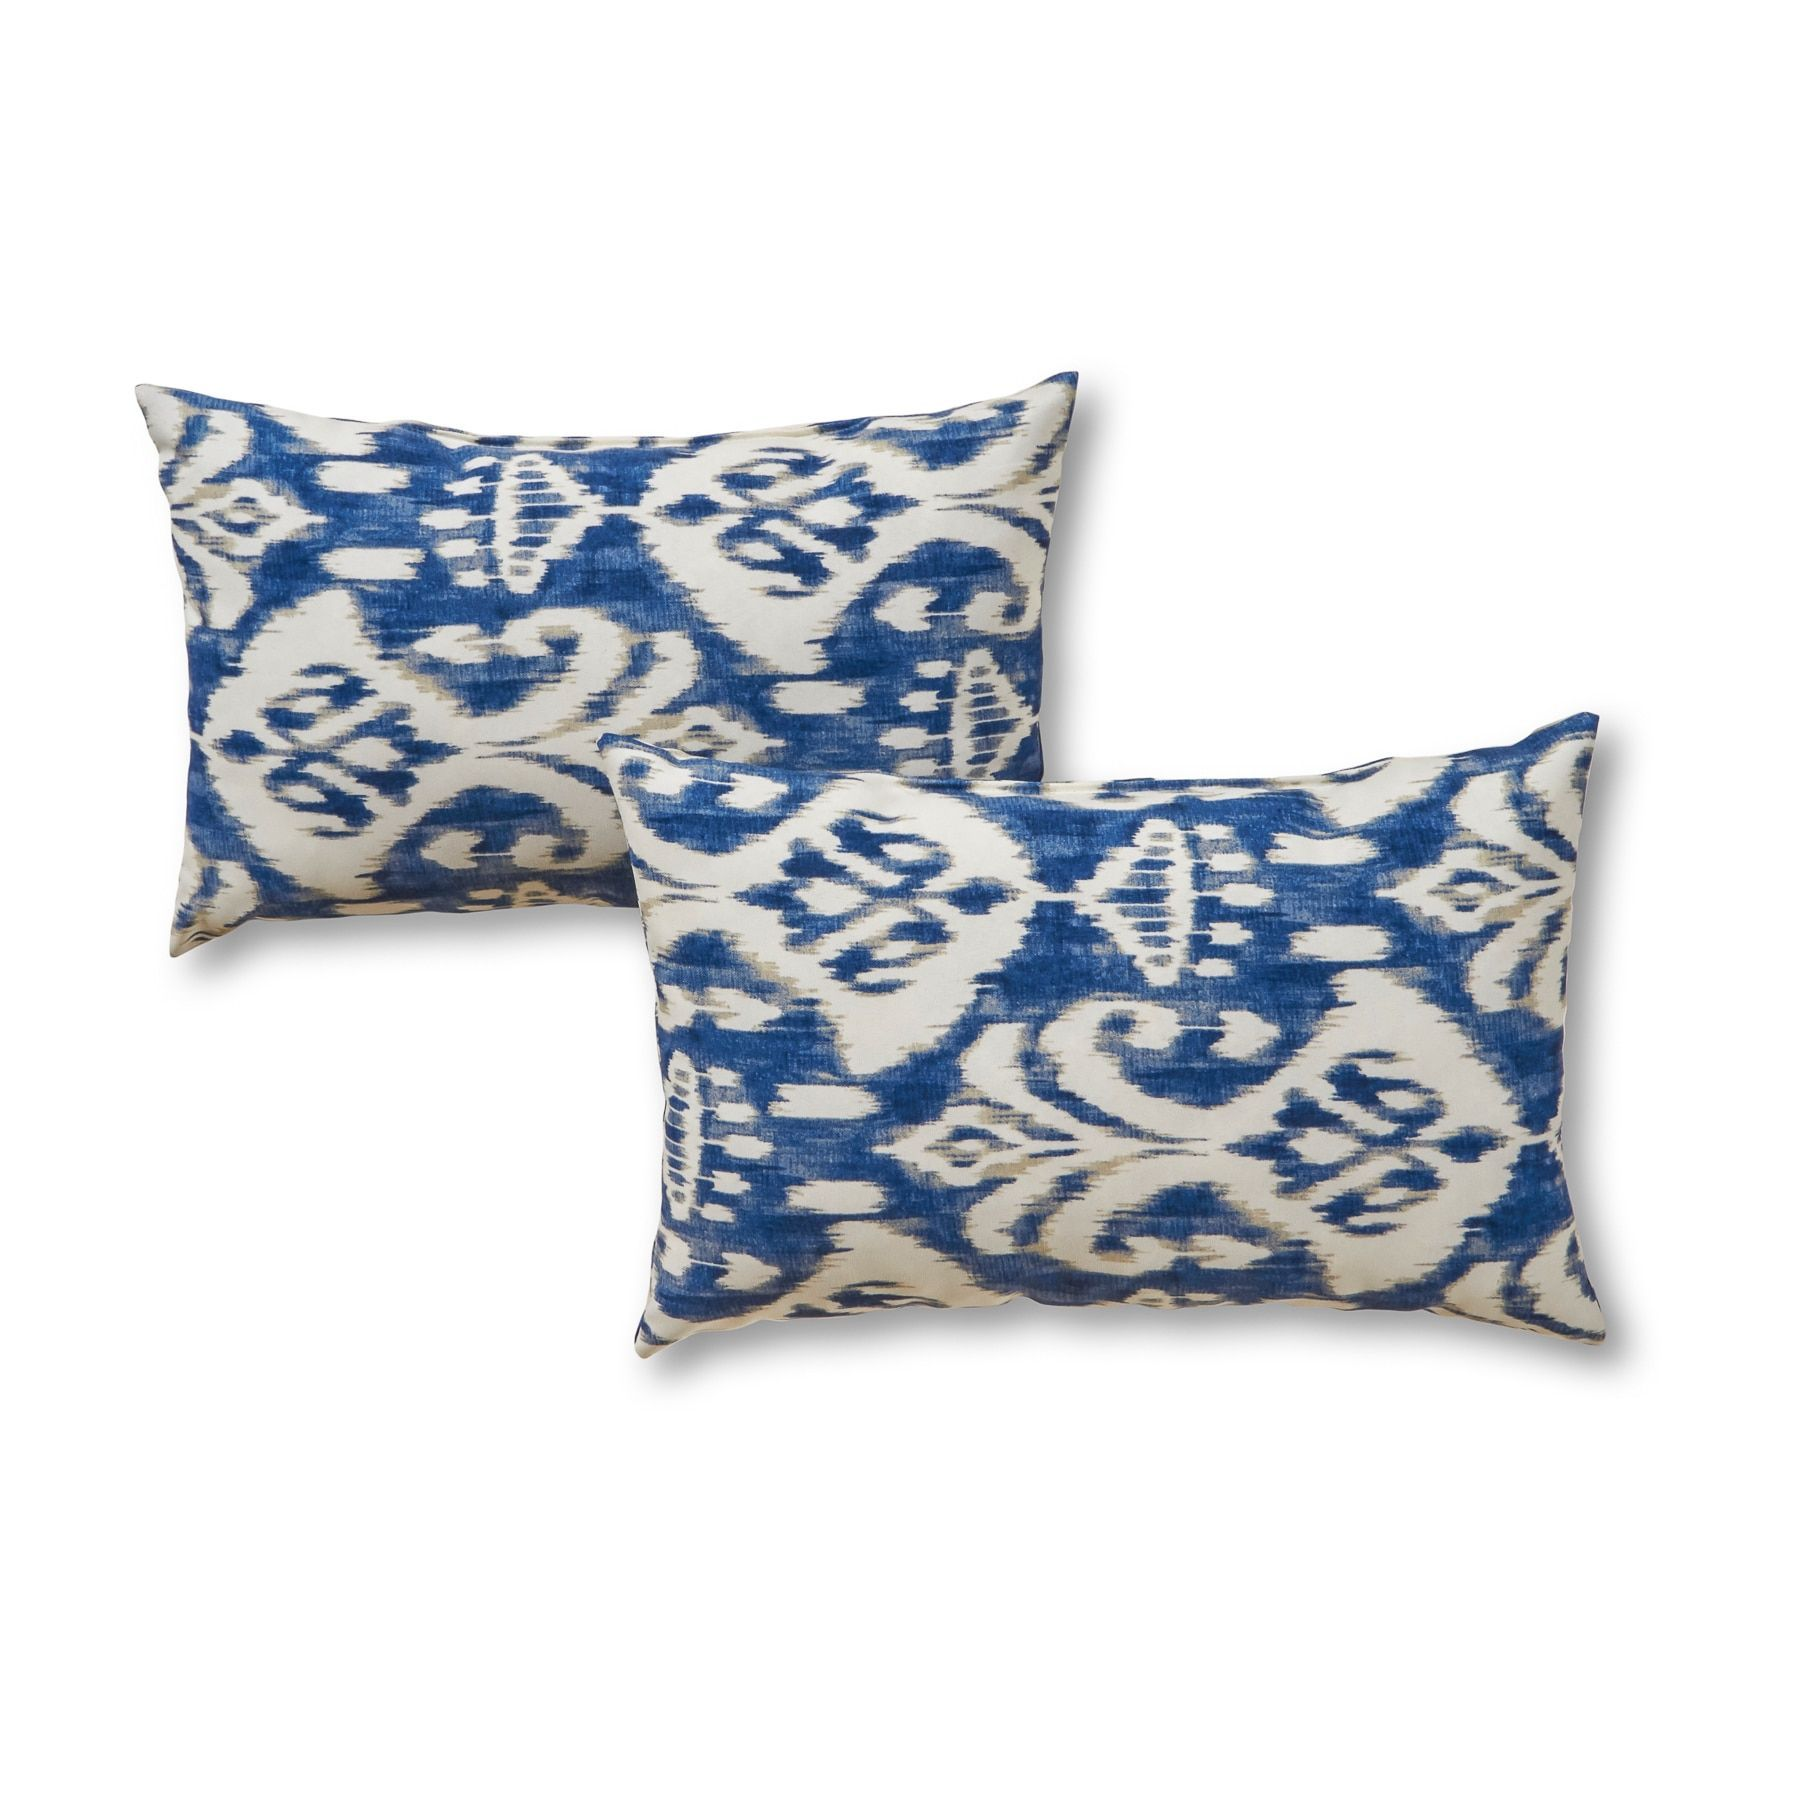 Outdoor Rectangle Accent Pillows Set Of Two In Coastal Ikat Sea